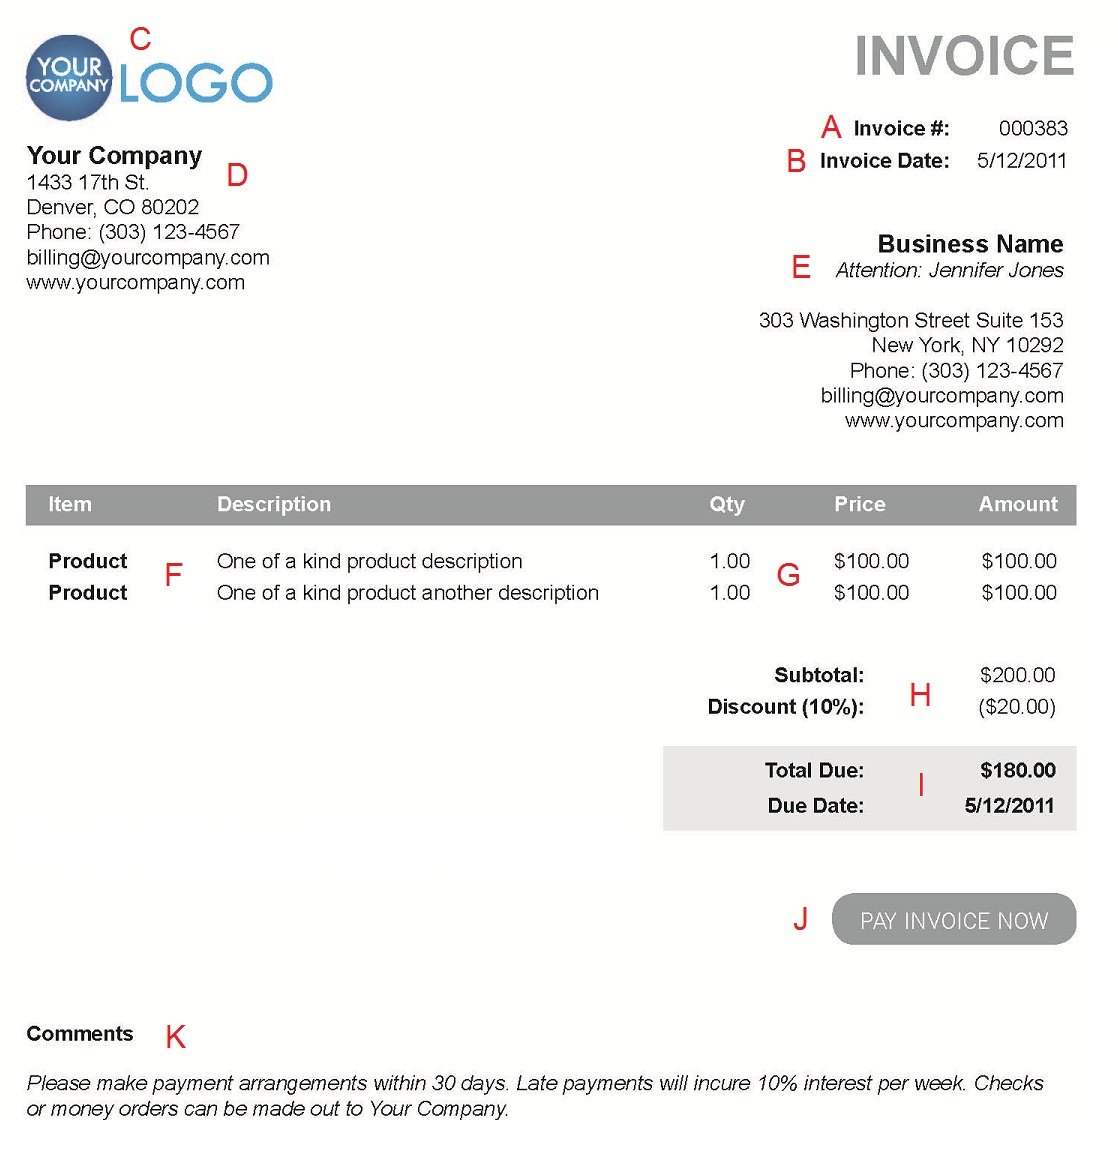 Gpwaus  Nice The  Different Sections Of An Electronic Payment Invoice With Luxury A  With Nice How To Send An Invoice Through Paypal Also Invoice Machine In Addition Invoice Discounting And Excel Invoice Templates As Well As Invoice Price Vs Msrp Additionally Invoice Payment Terms From Paysimplecom With Gpwaus  Luxury The  Different Sections Of An Electronic Payment Invoice With Nice A  And Nice How To Send An Invoice Through Paypal Also Invoice Machine In Addition Invoice Discounting From Paysimplecom